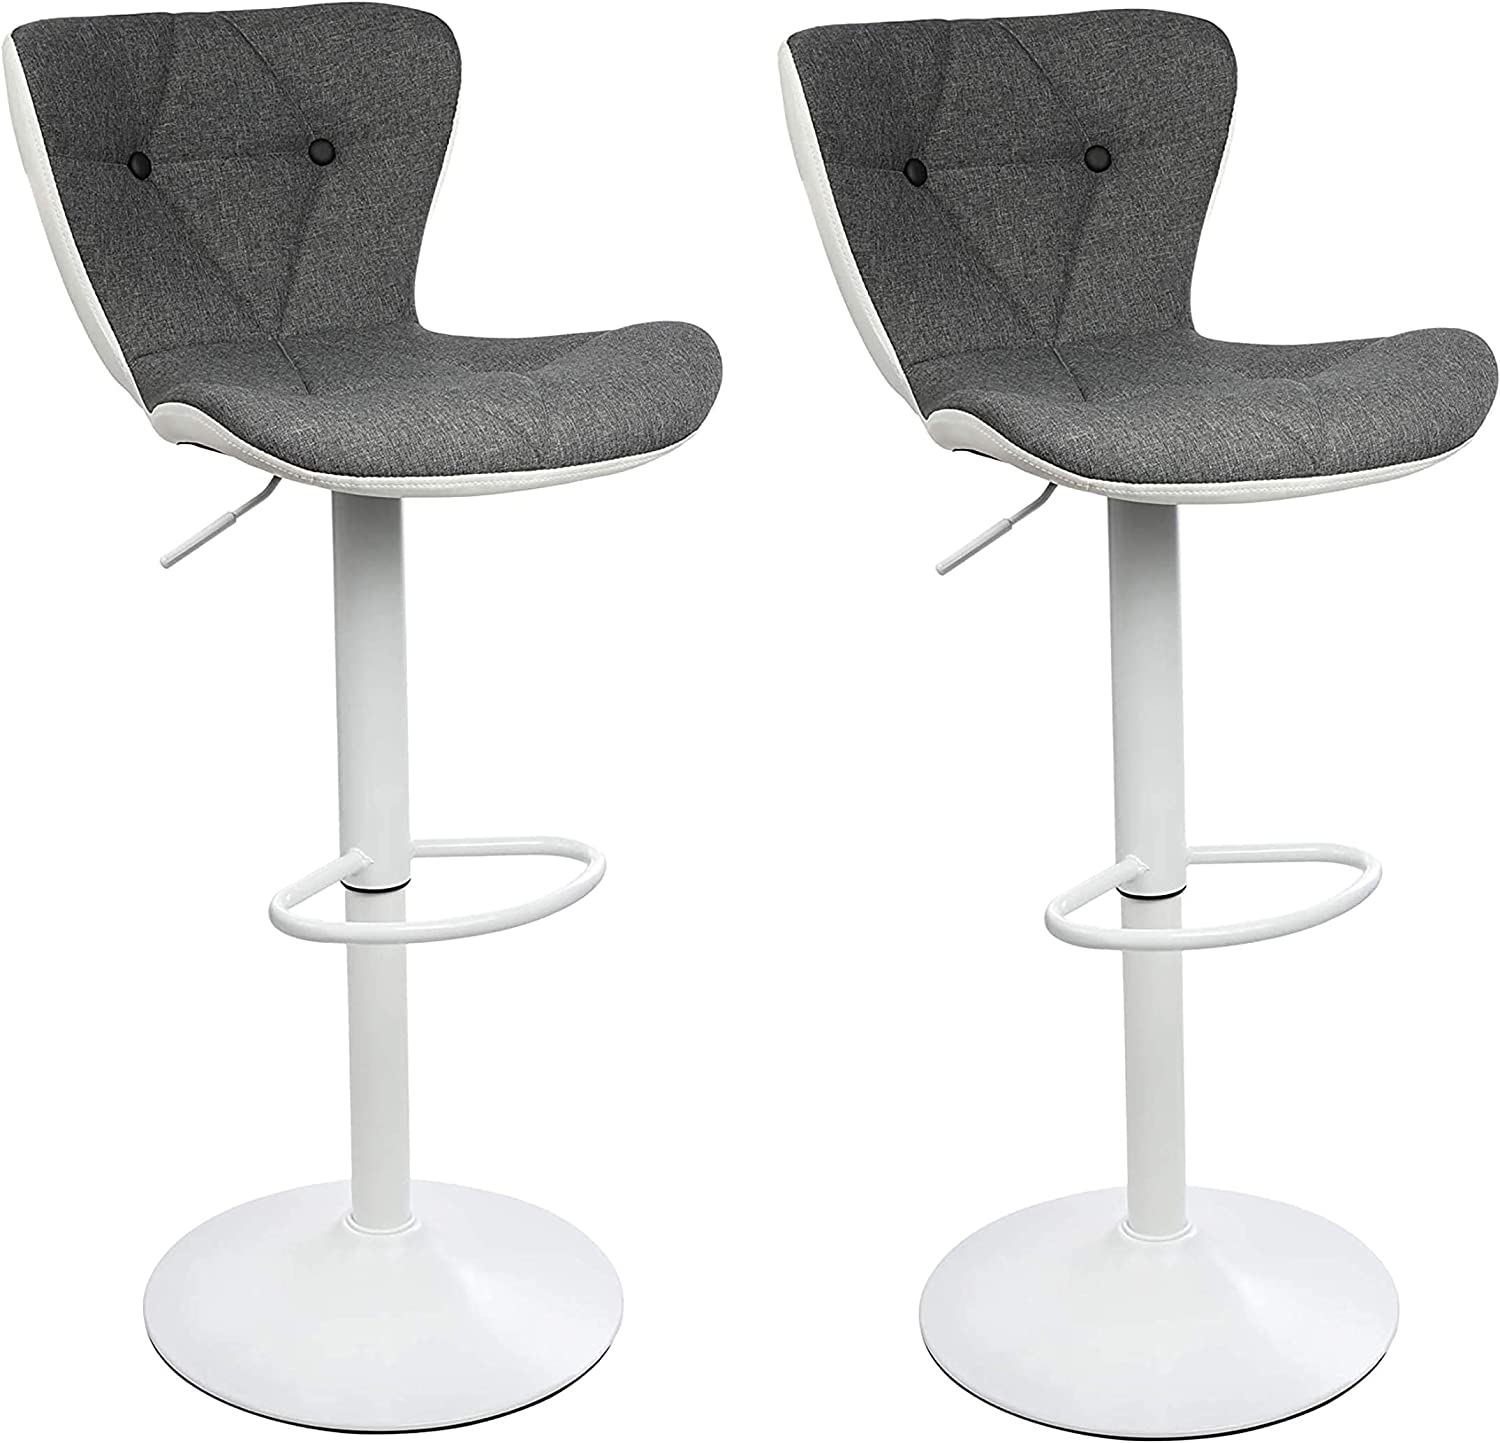 In Limited price stock Halter Barstool Adjustable Height Counter Stool Chairs